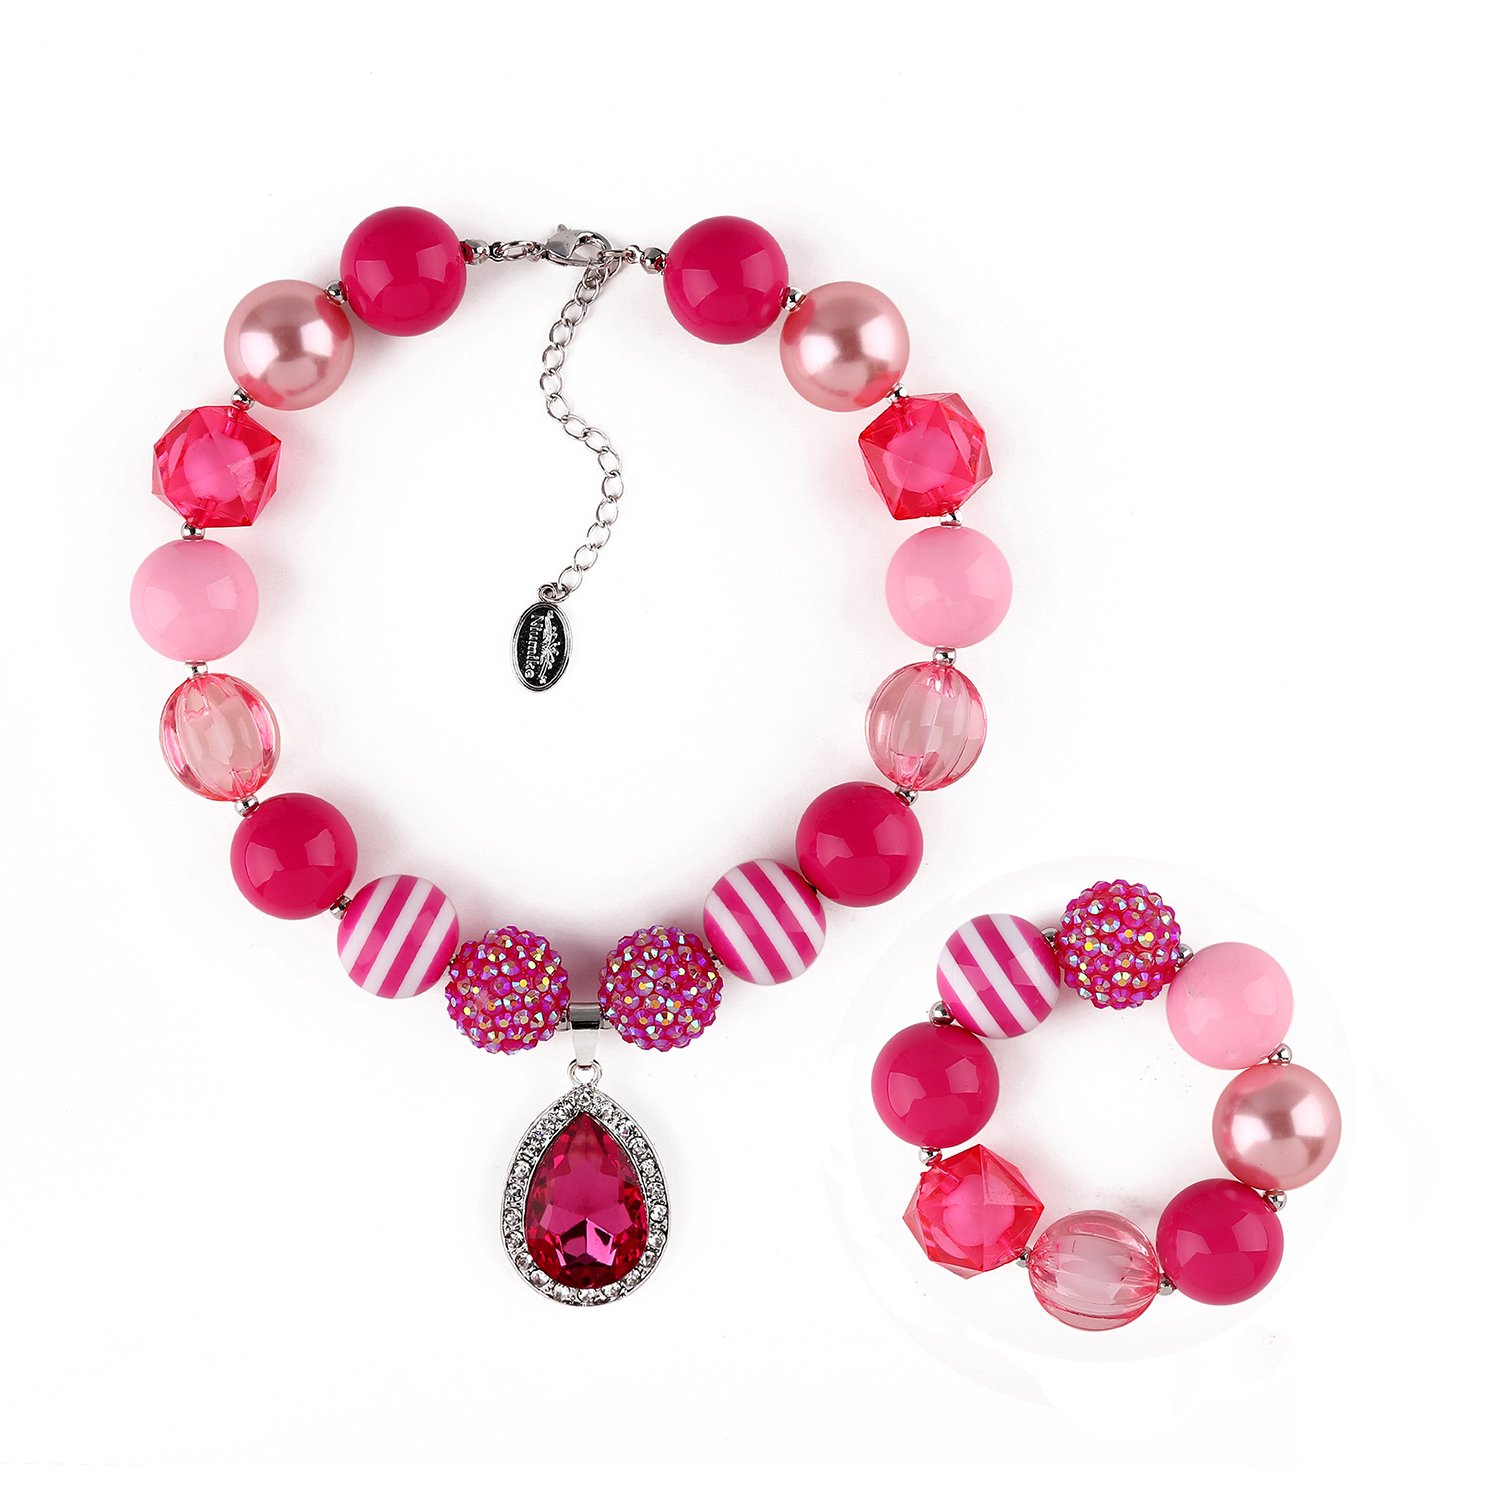 Niumike Little Girl Lightweight Chunky Bubblegum Necklace and Bracelet Set with Teardrop Crystal Pendant for Kid Birthday Gift, Box Box (Pink)